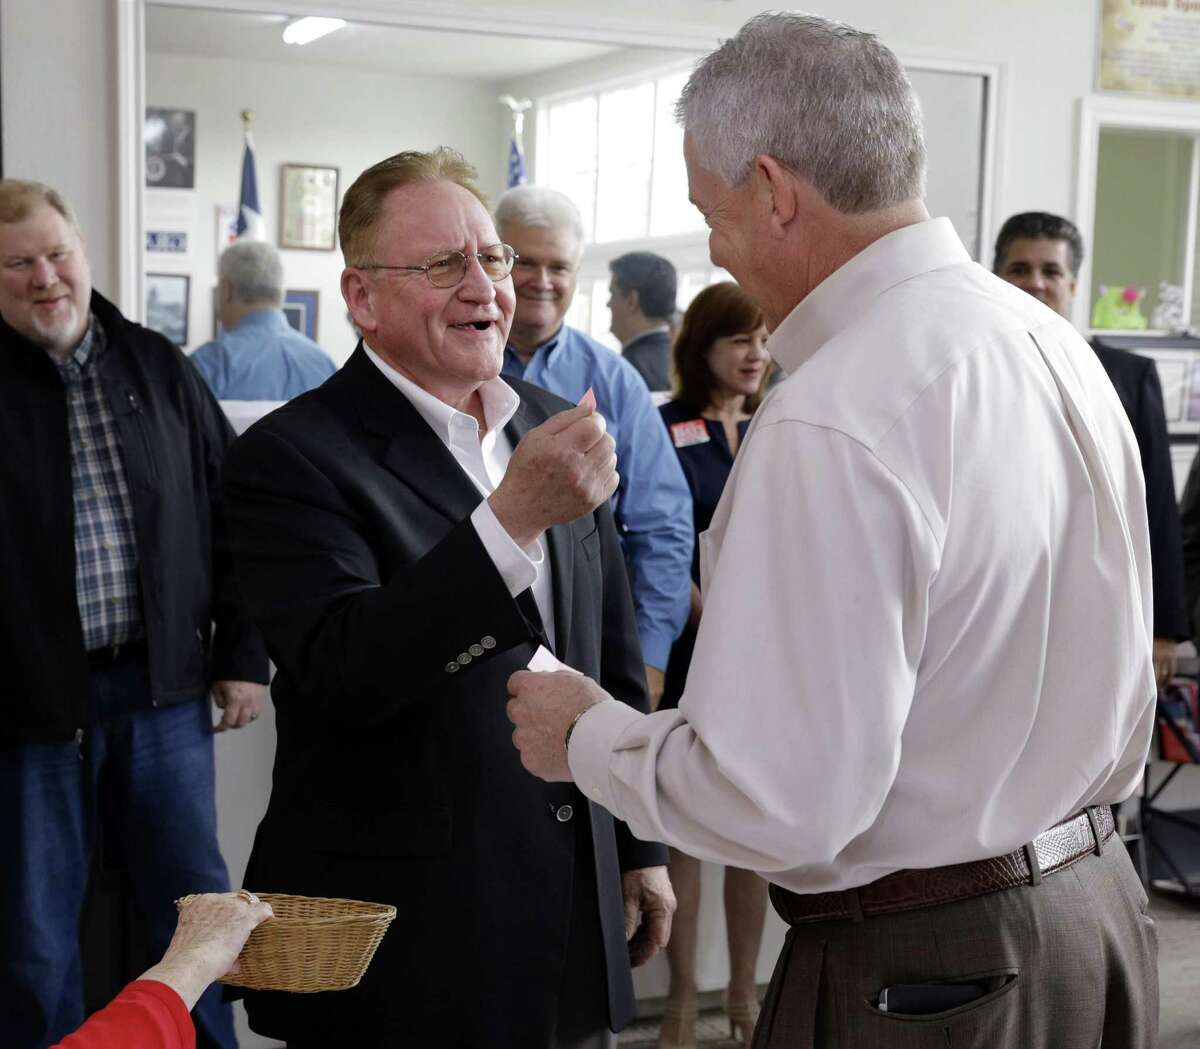 Montgmery County Judge Craig Doyal speaks with state Rep. Mark Keough at the Montgomery County GOP office in Conroe on Dec. 21, 2017. Keough defeated Doyal in the GOP primary for county judge two months later. Now Doyal is leaving office county judge at the end of 2018 after a career in public service.